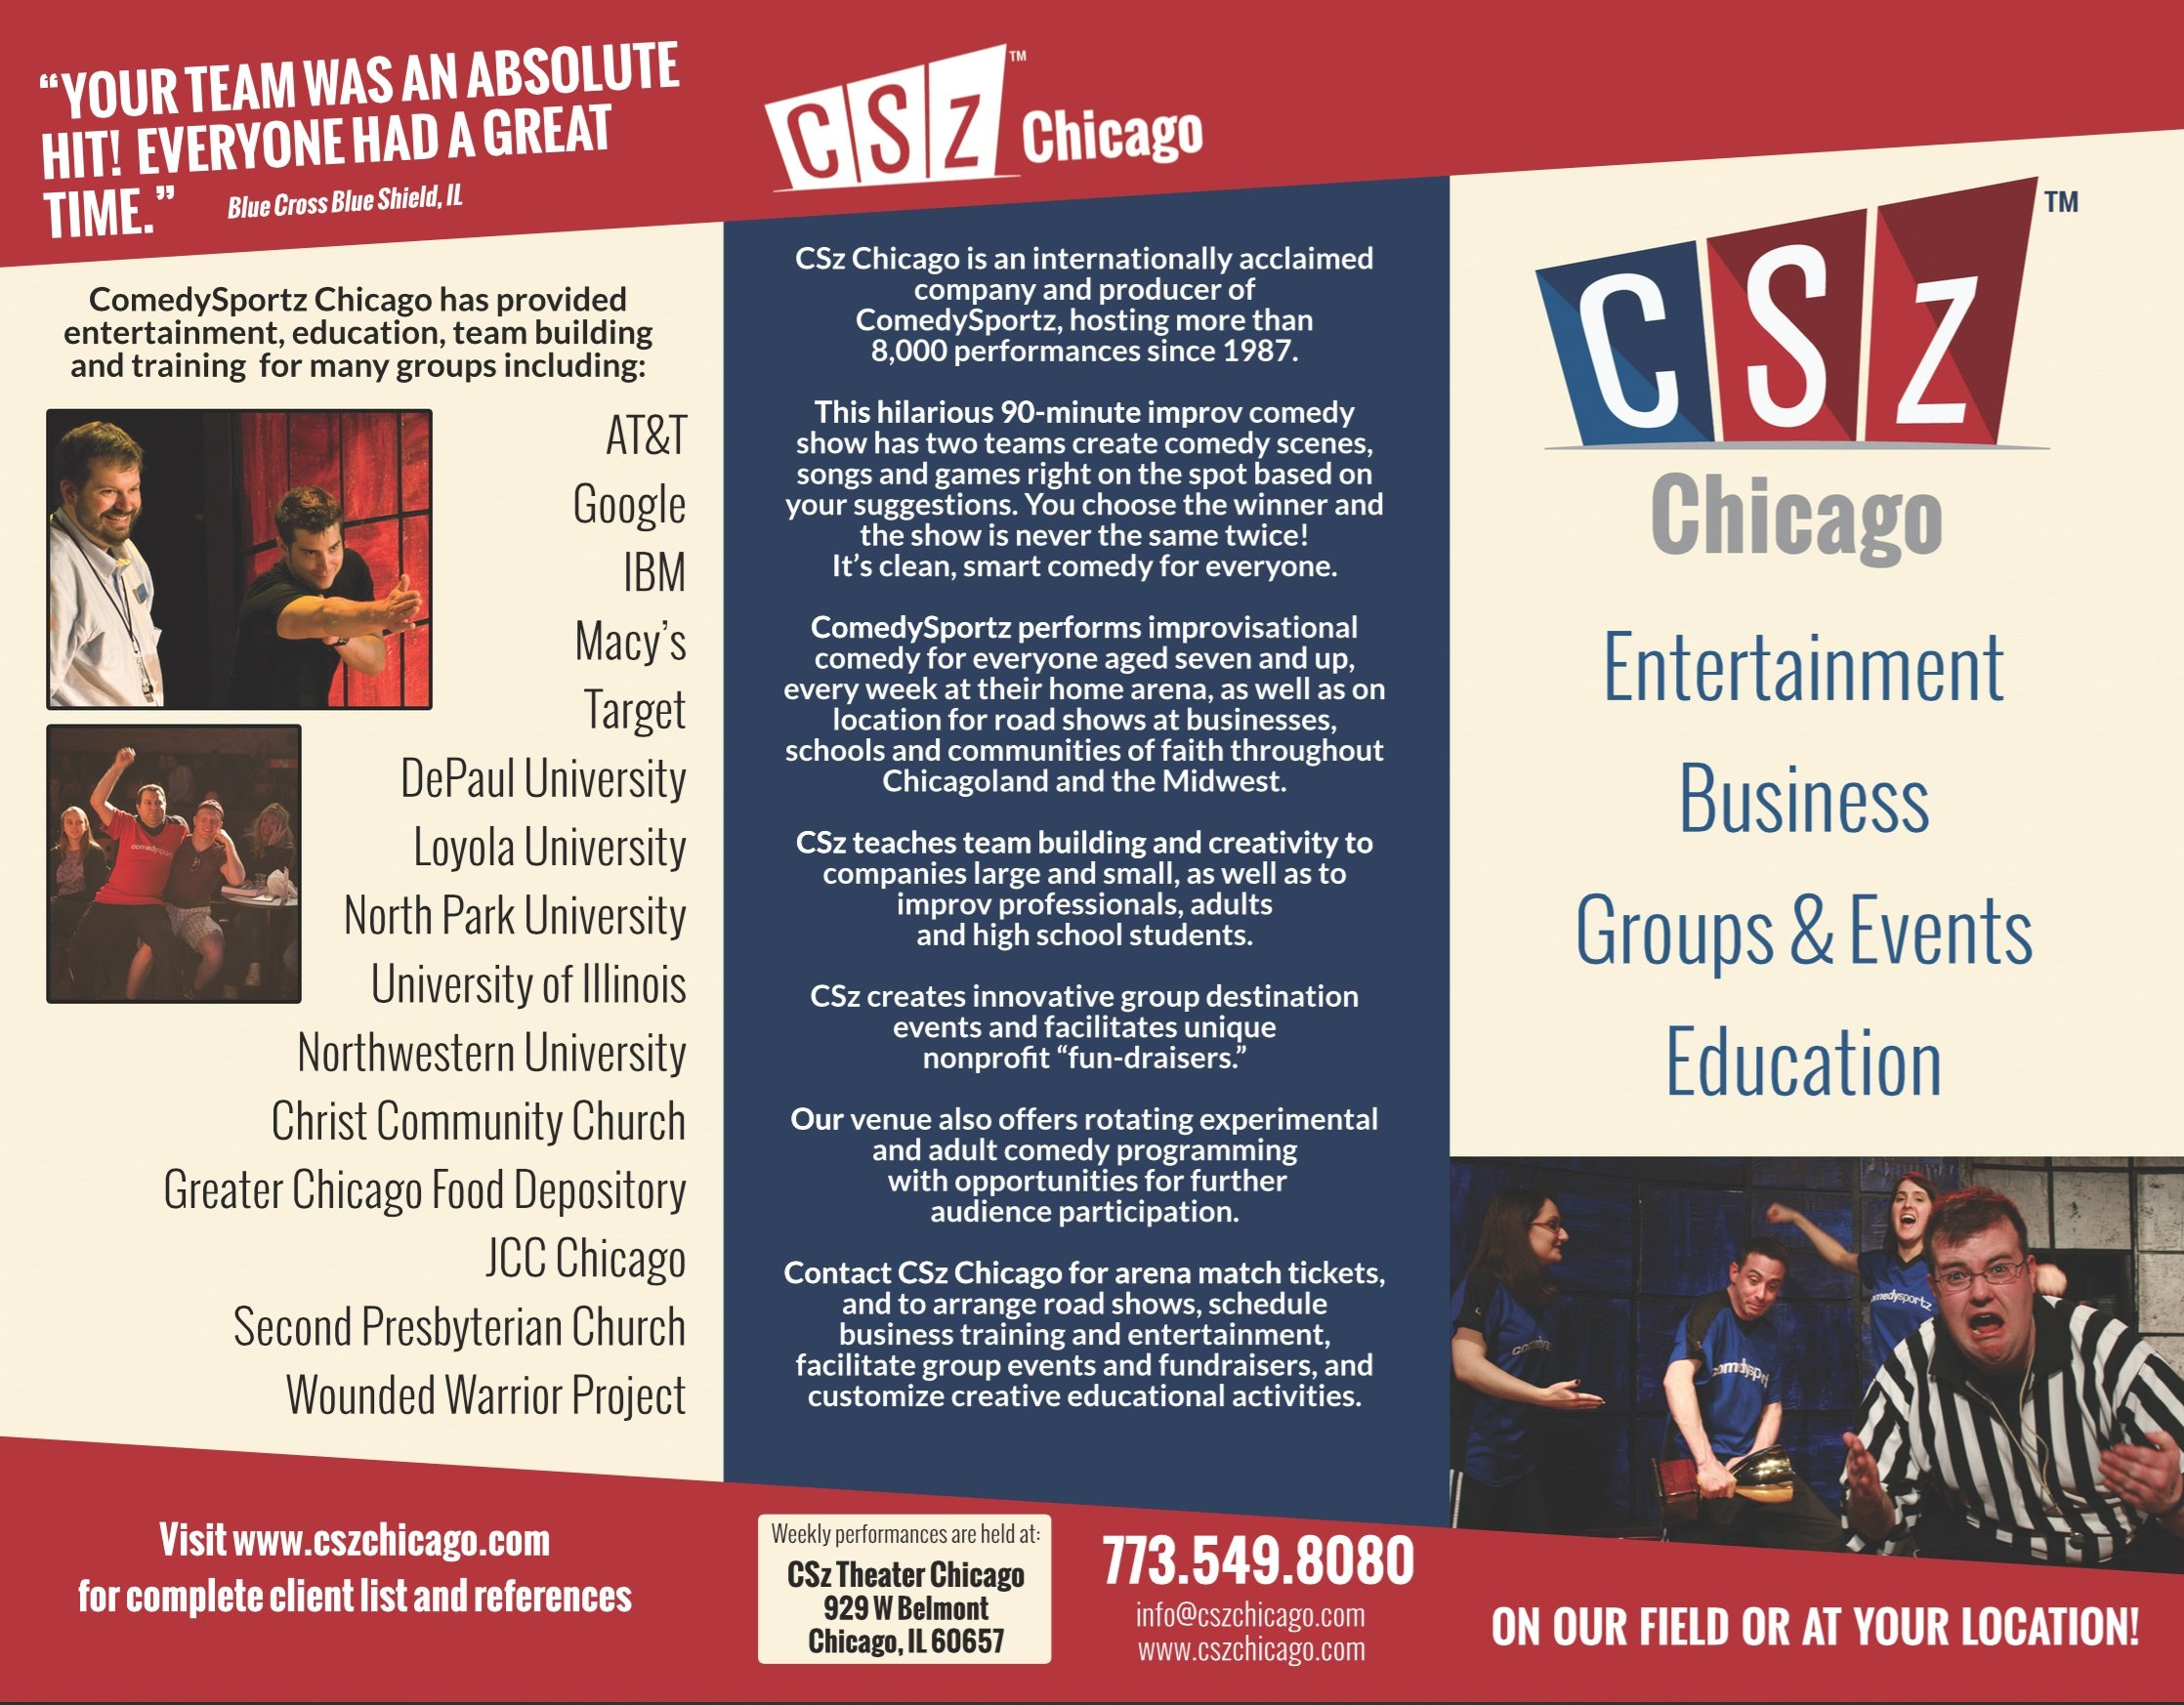 https://0201.nccdn.net/1_2/000/000/173/874/CSz-Chicago-Brochure-1-2236x1746.jpg